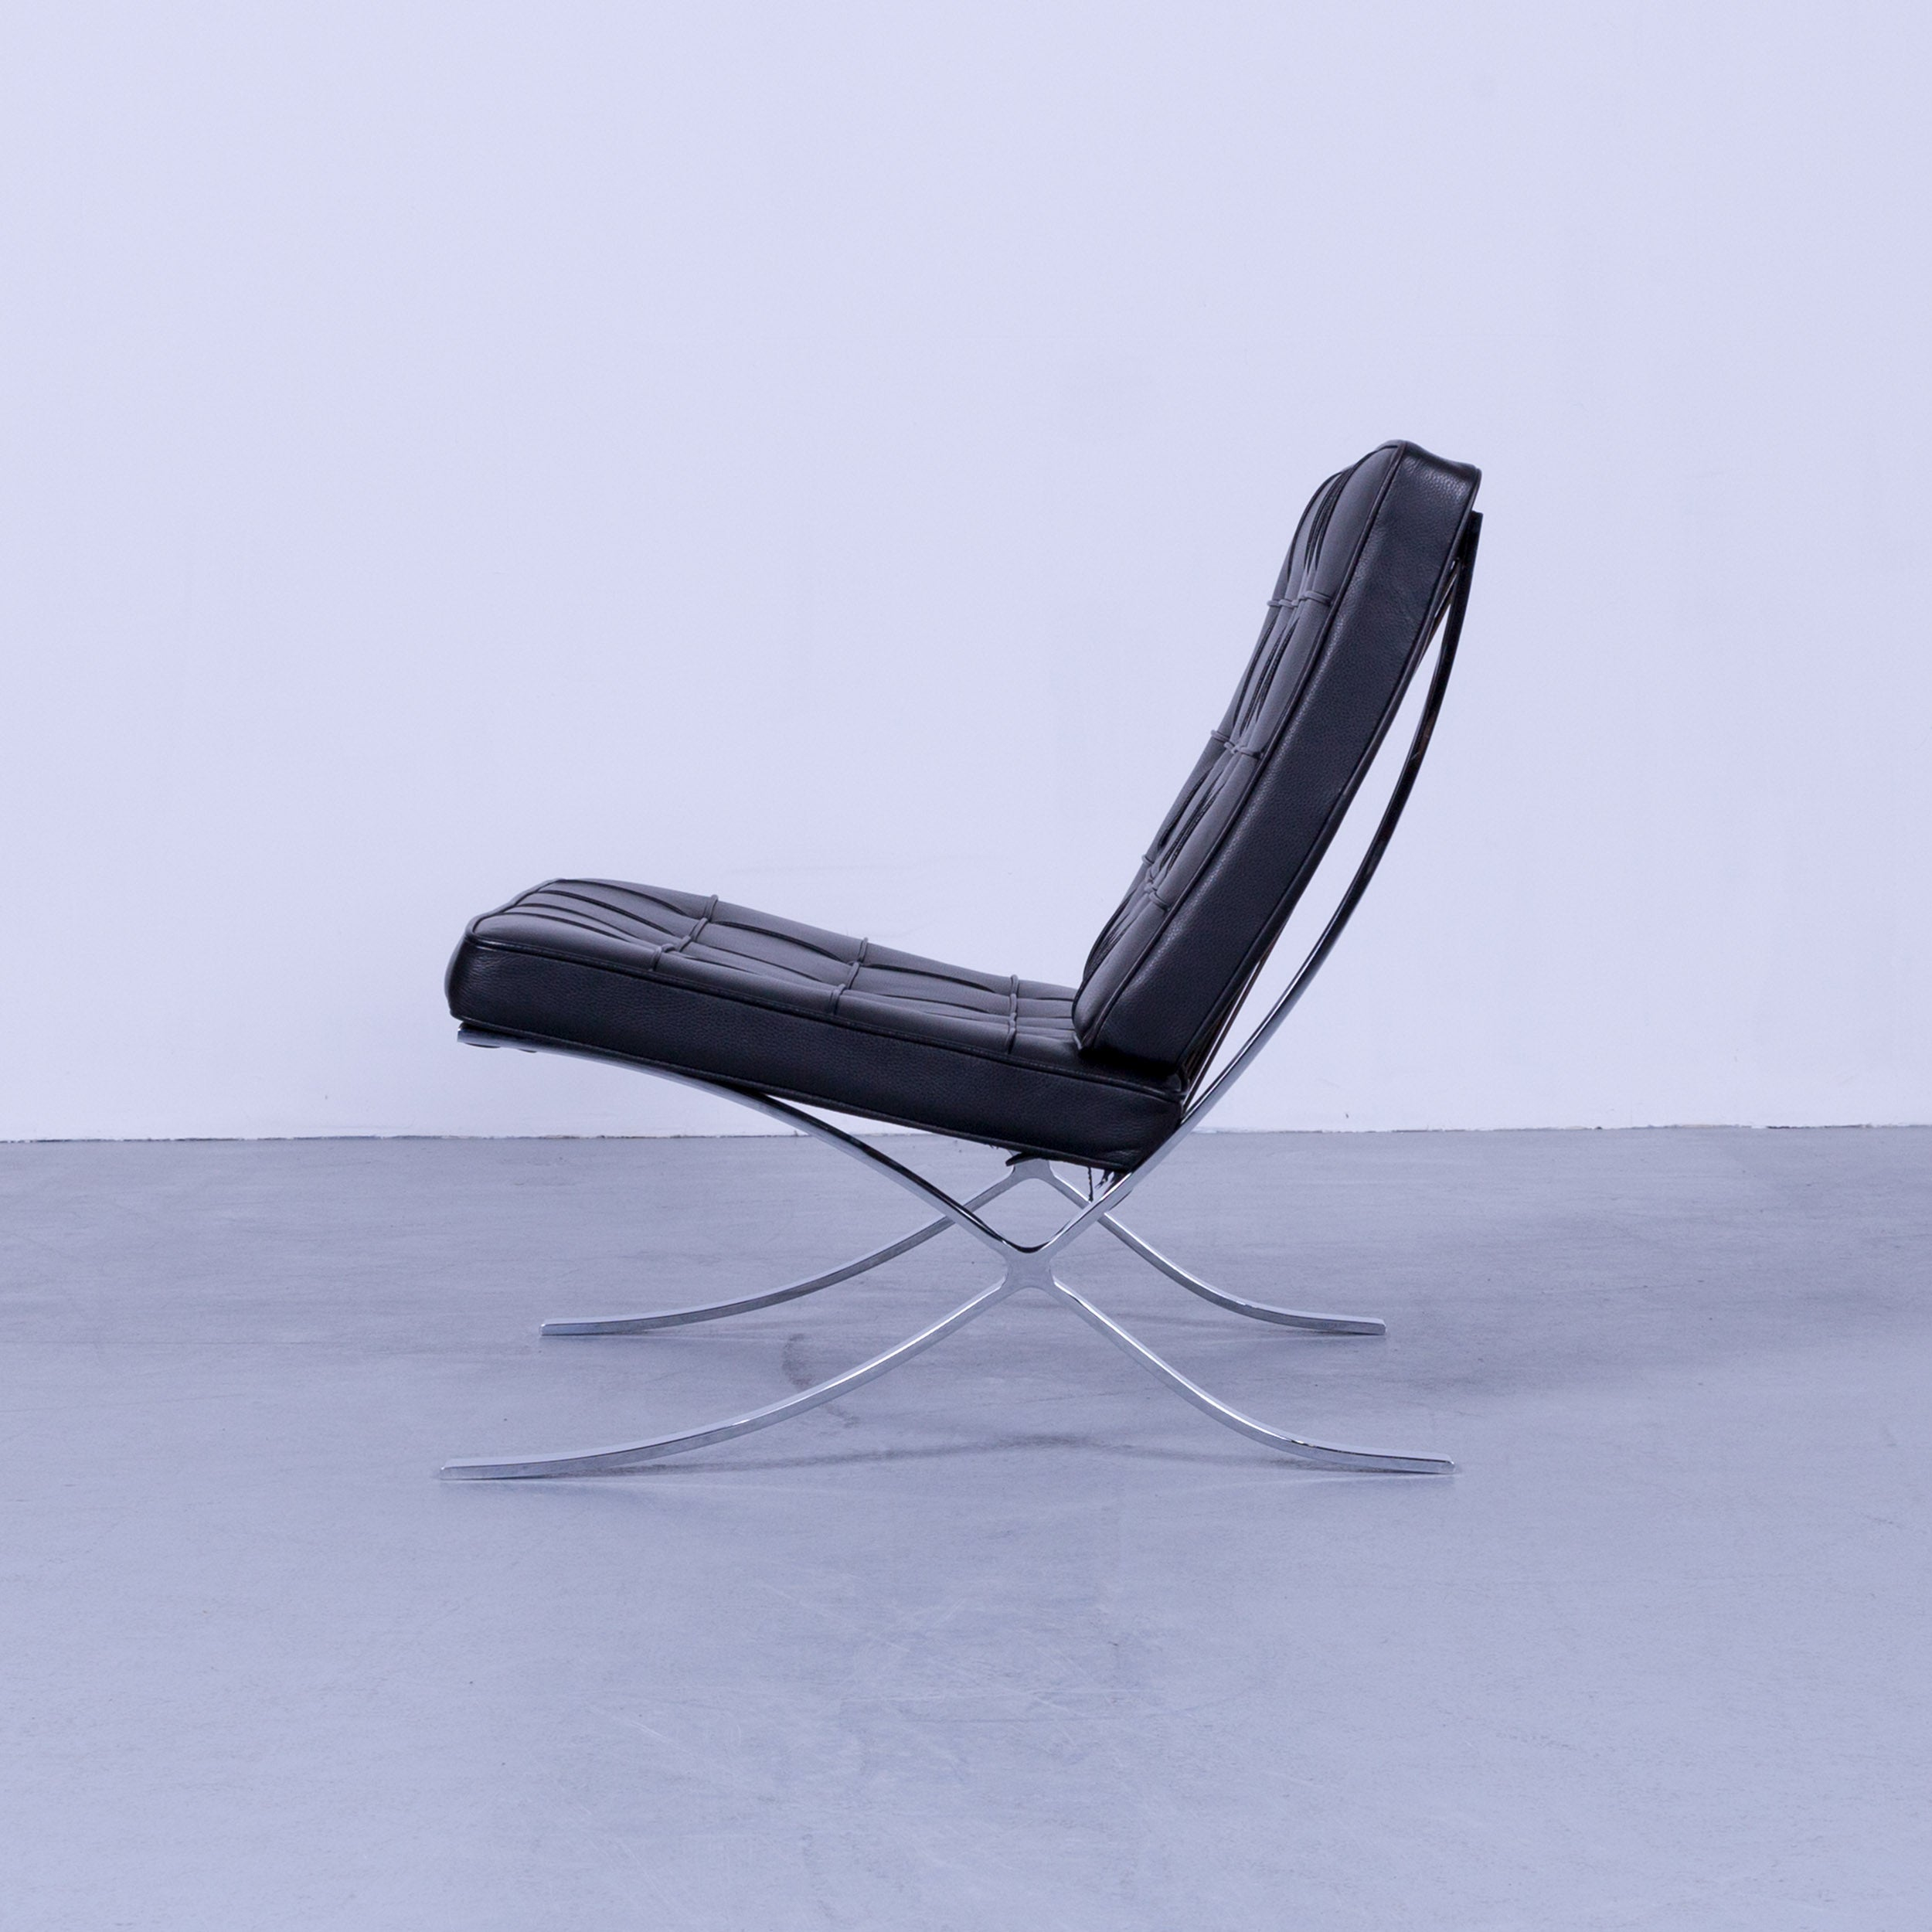 Knoll Sessel Gebraucht Knoll International Barcelona Chair Black Leather Ludwig Mies Van Der Rohe